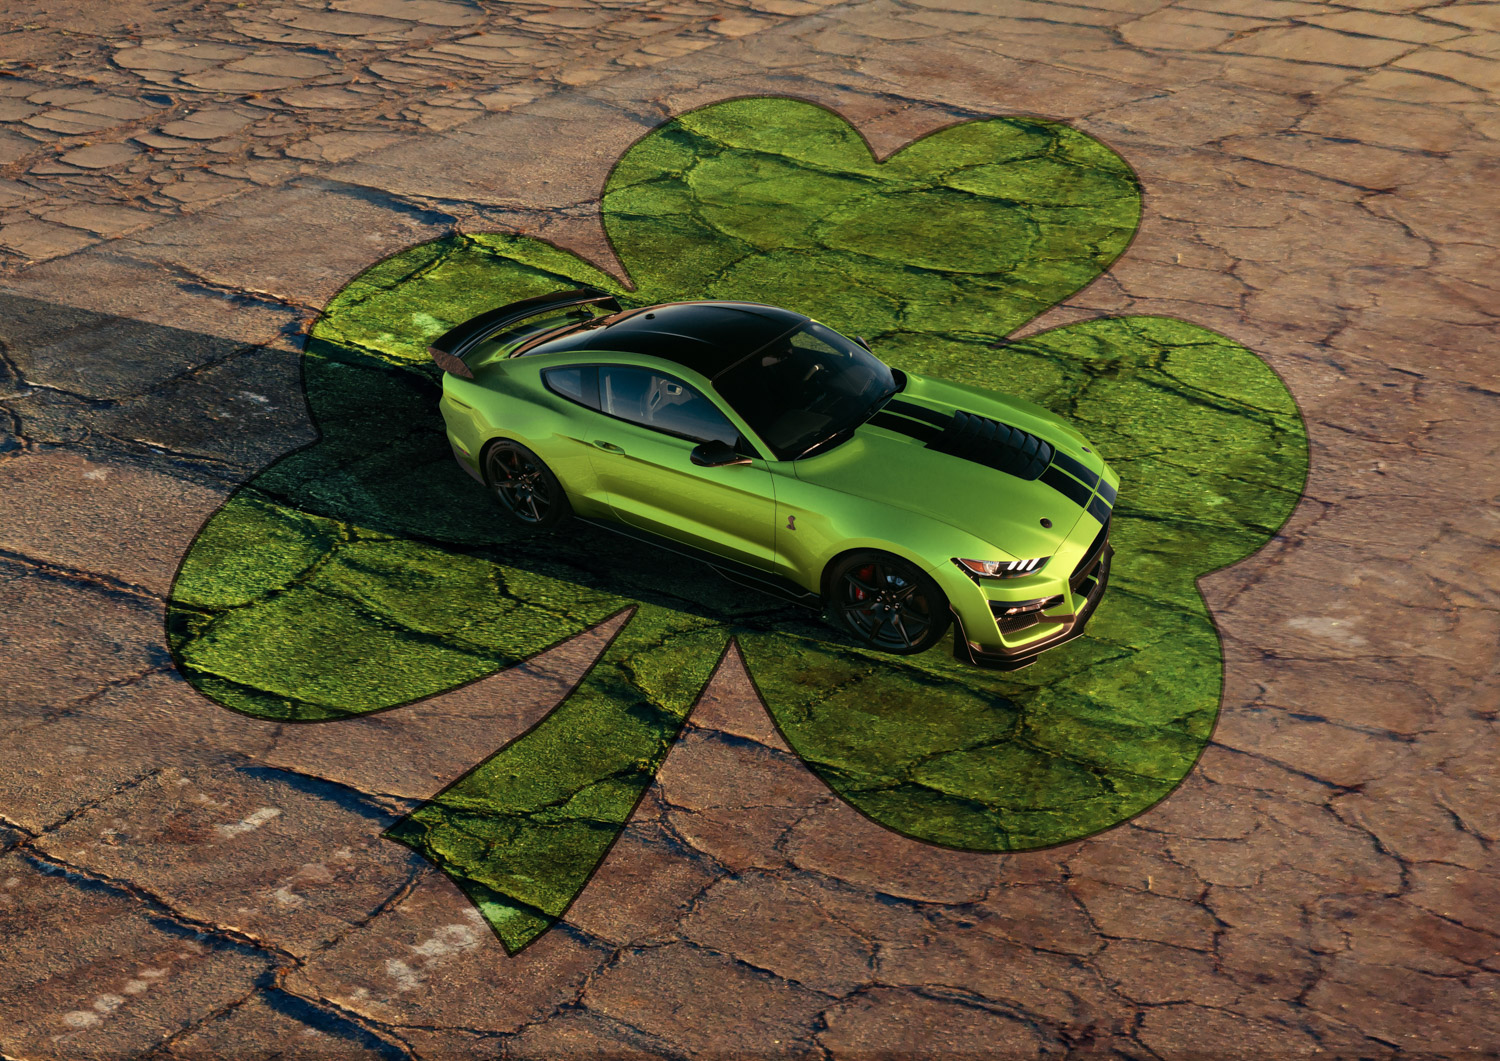 2020 Mustang GT500 in Grabber Lime with clover